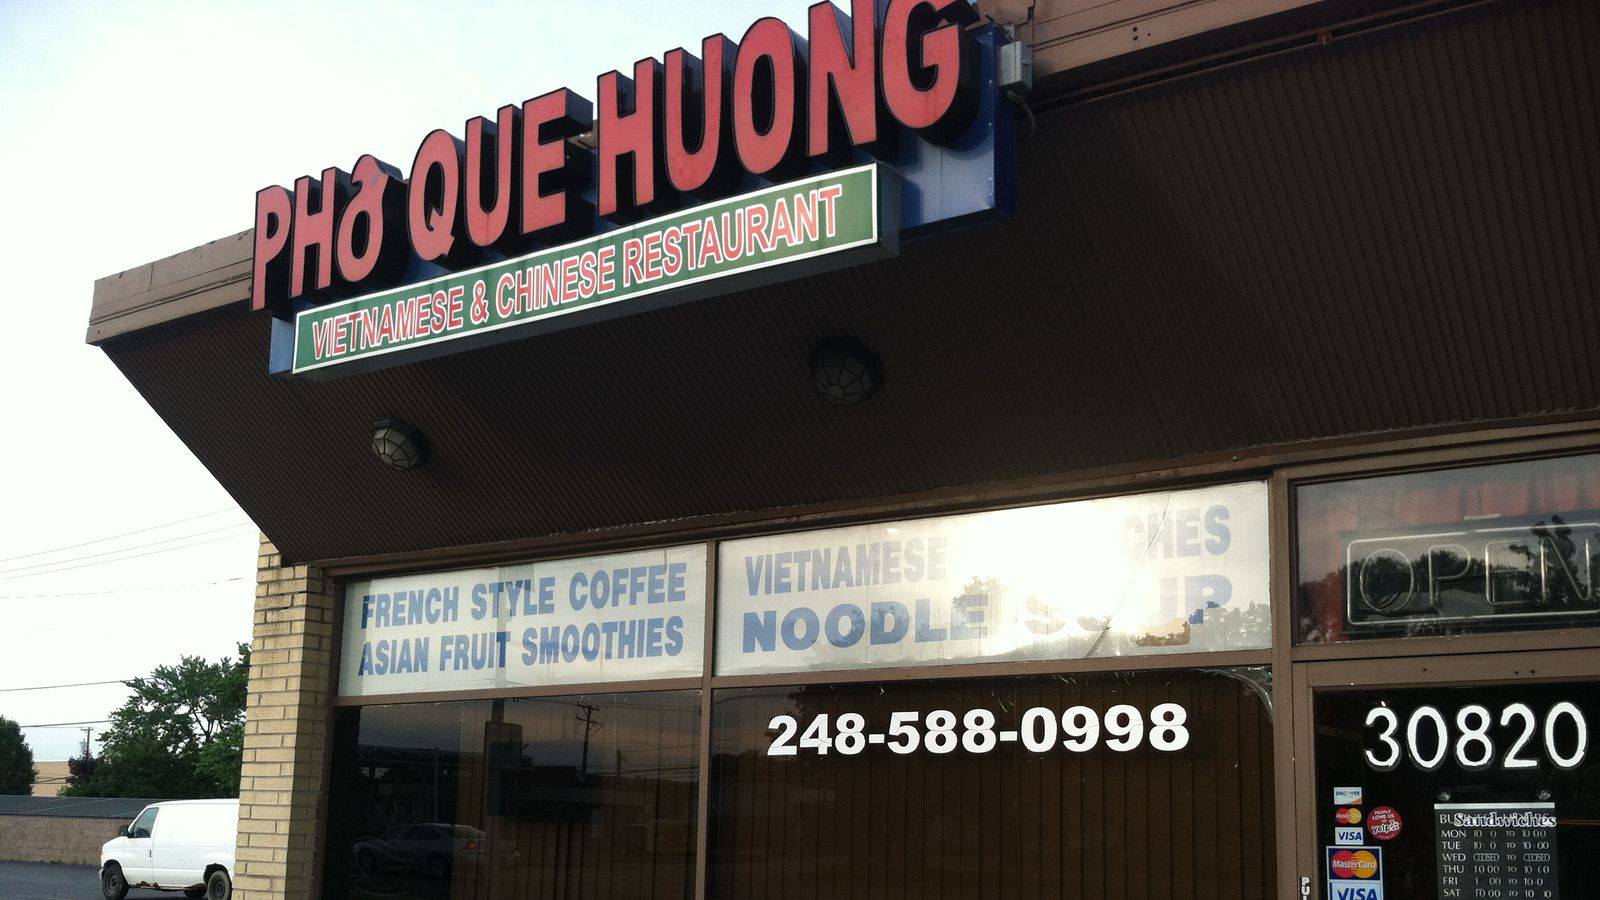 Where to Eat Vietnamese in Metro Detroit: 8 Tasty Spots